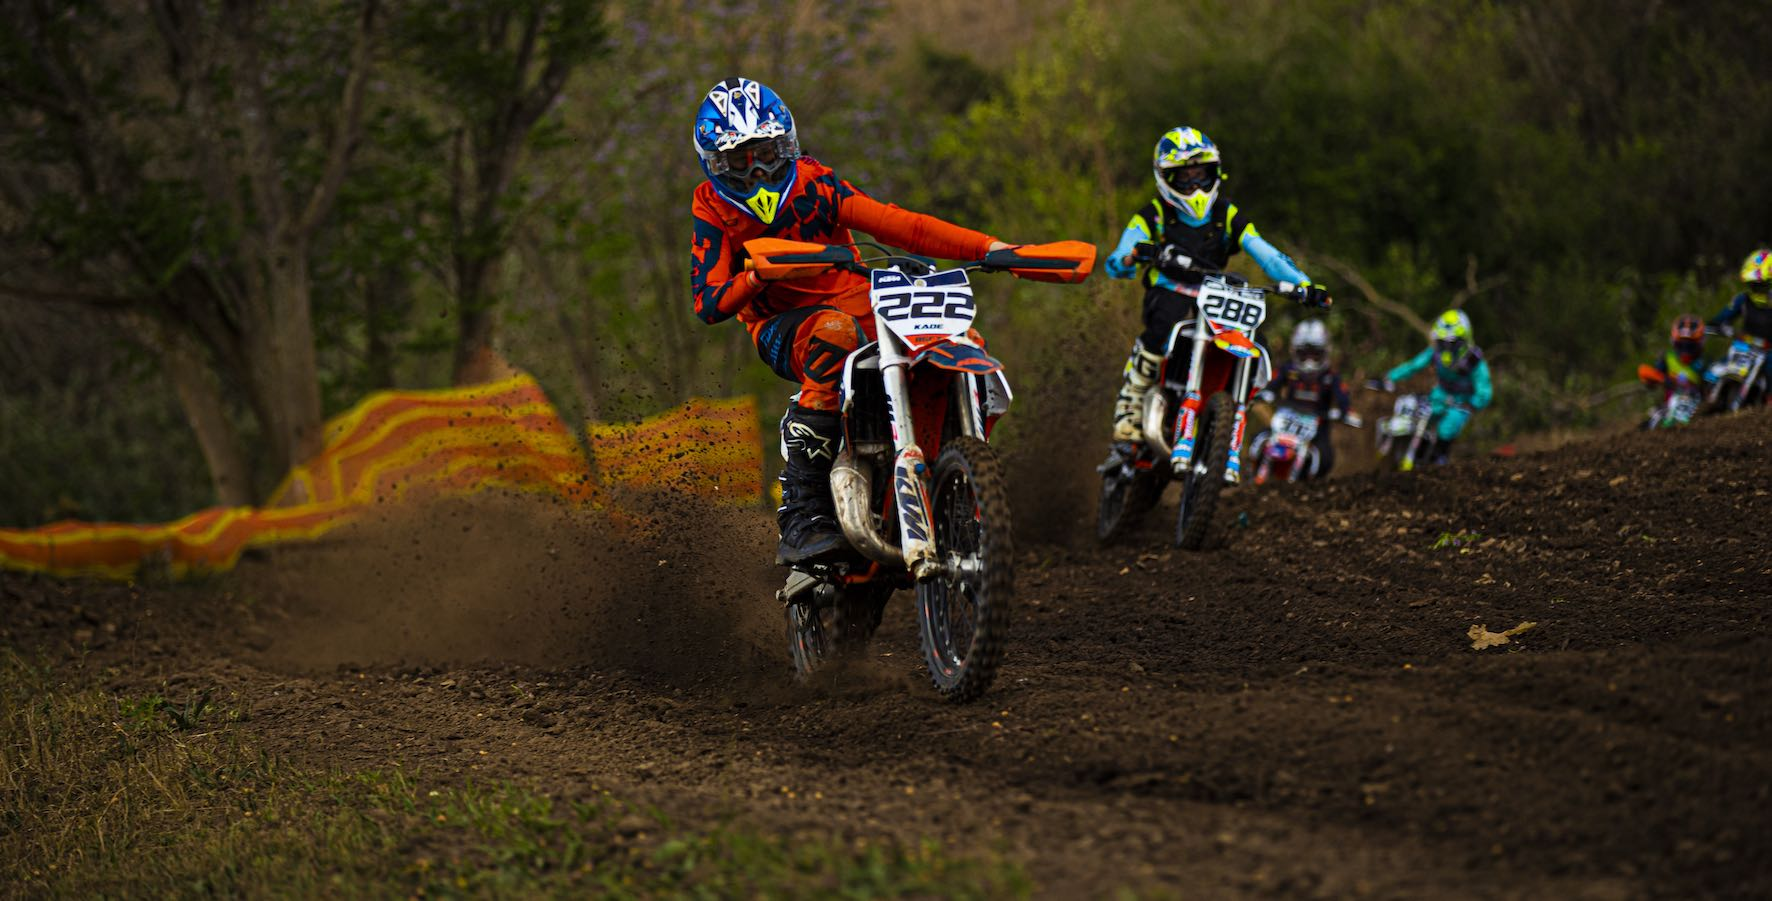 Kayde van Deventer racing in the Motocross Nationals at Thunder Valley